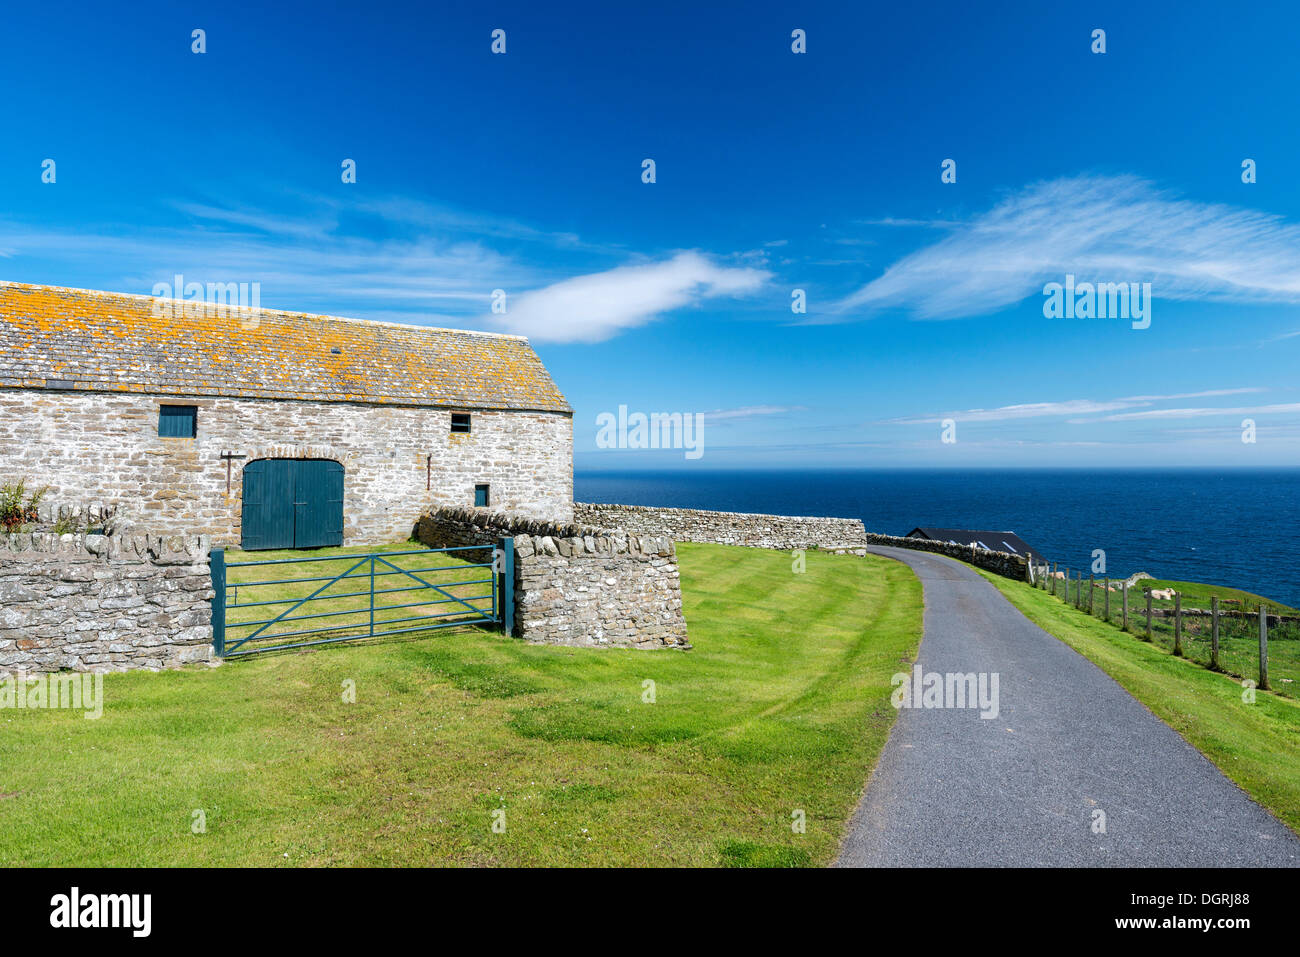 Farmhouse on the North Sea coast near Dunbeath, Caithness County, Scotland, United Kingdom, Europe - Stock Image